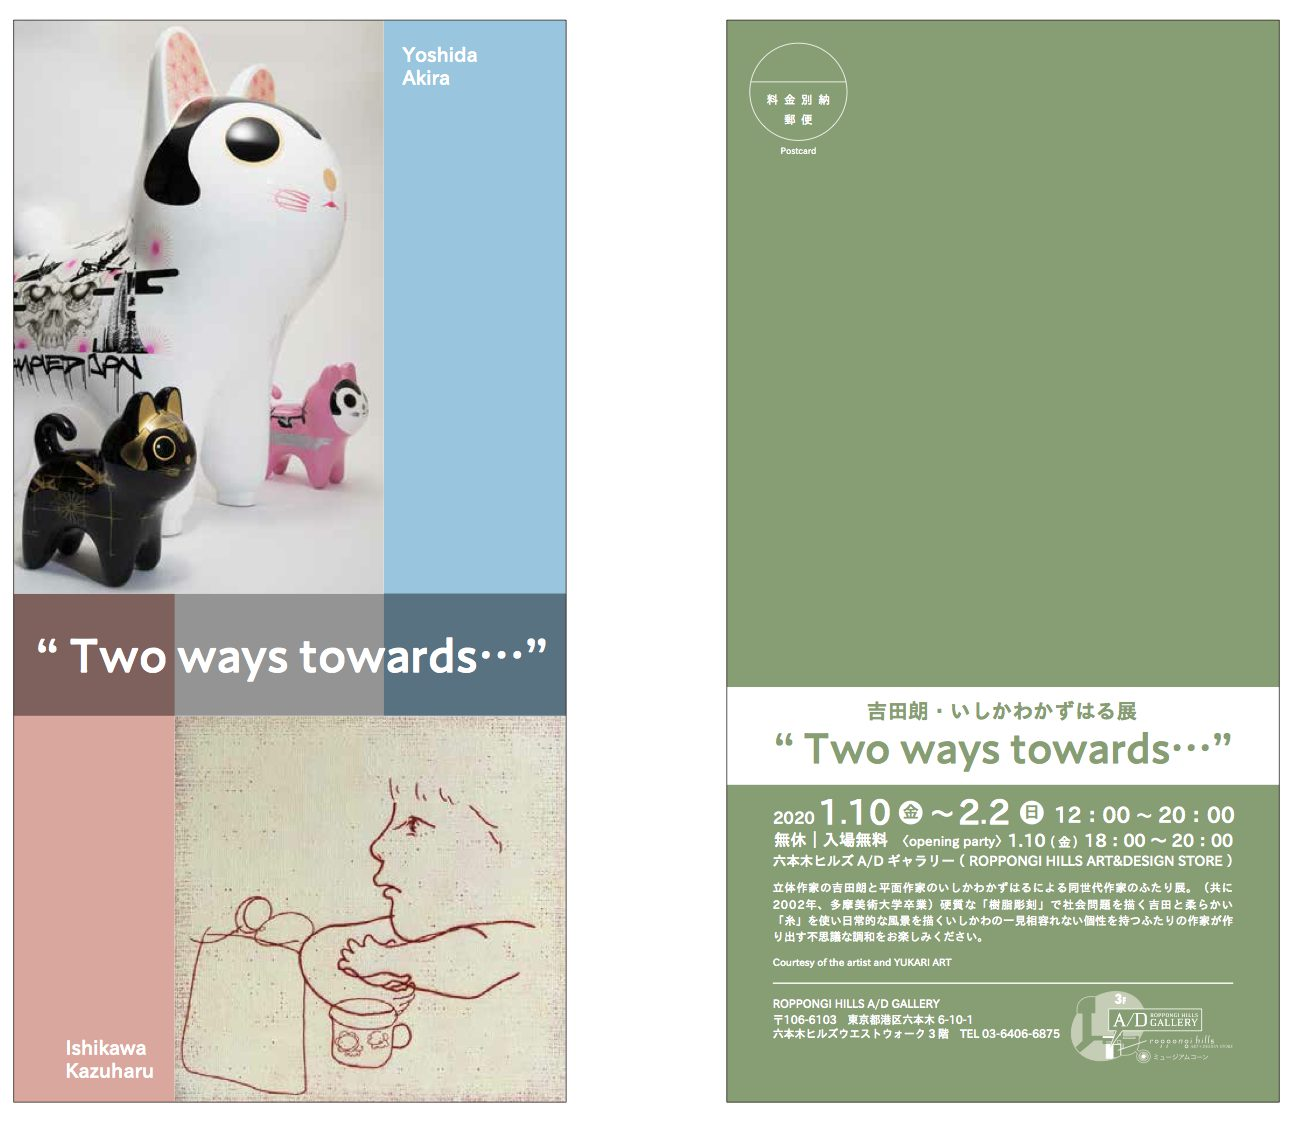 "Two persons exhibition by Akira YOSHIDA & Kazuharu ISHIKAWA ""Two ways towards…"" @ROPPONGI HILLS A/D Gallery"